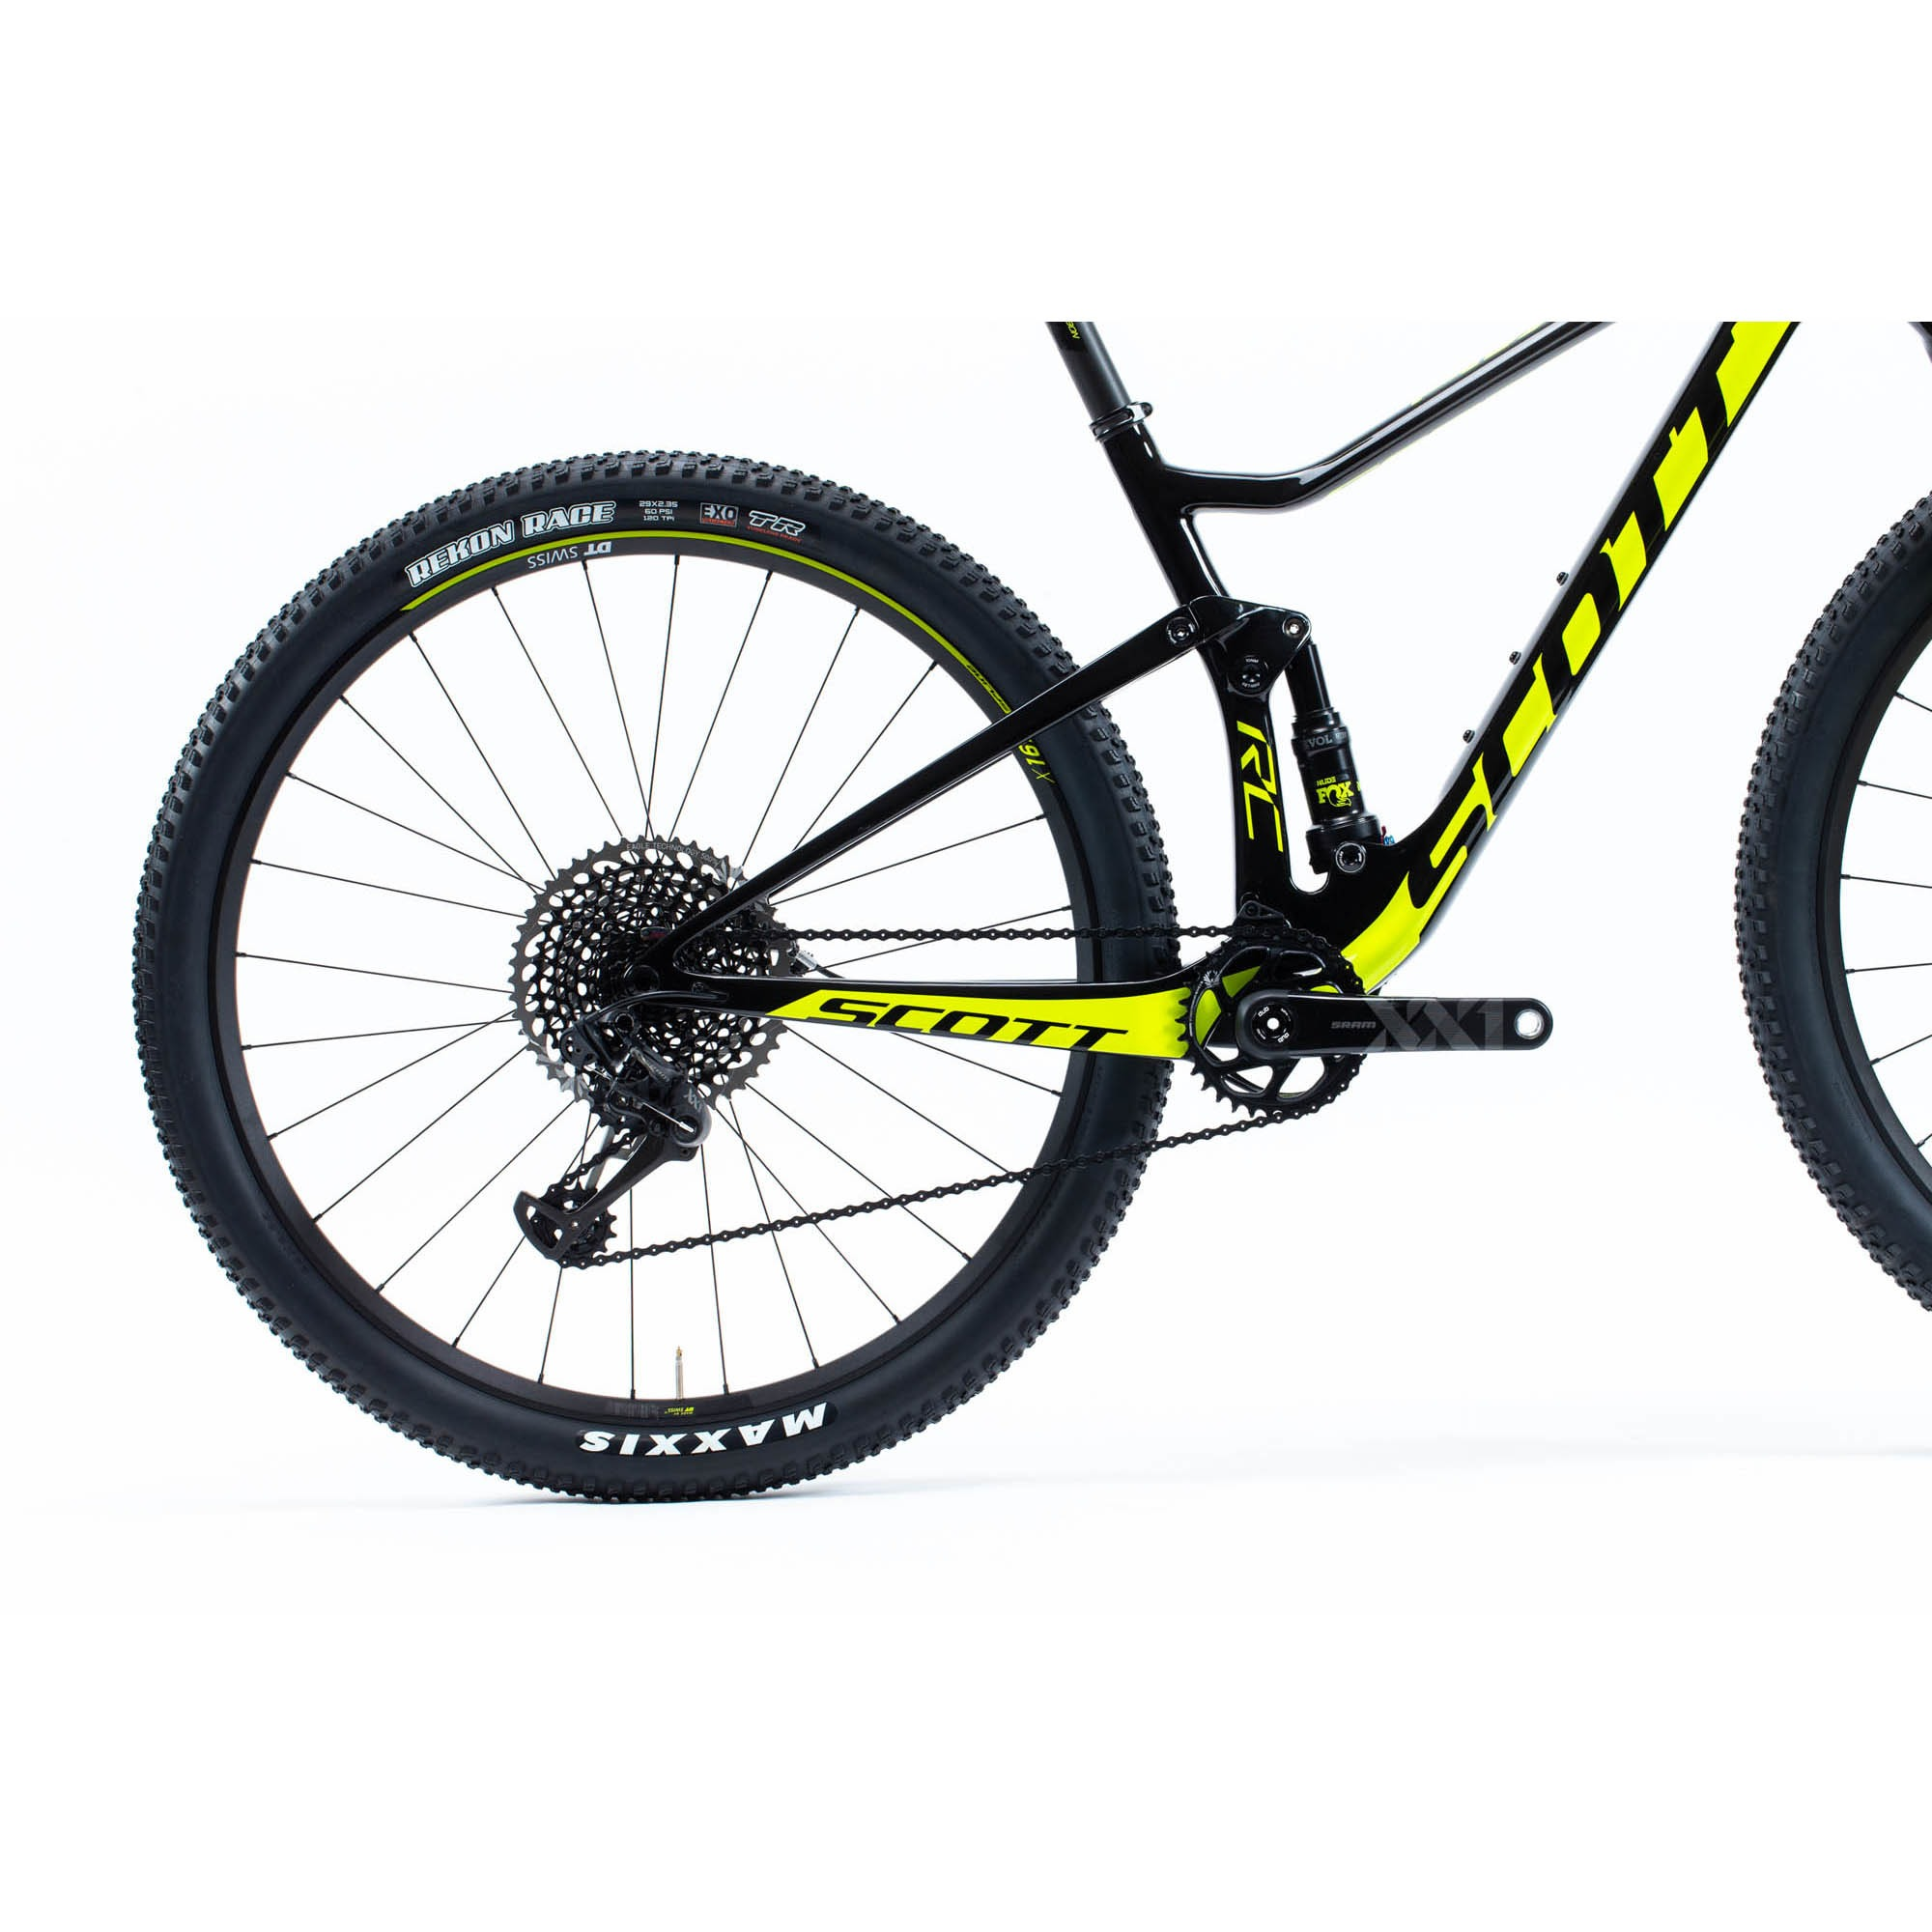 Bicicletta SCOTT Spark RC 900 World Cup